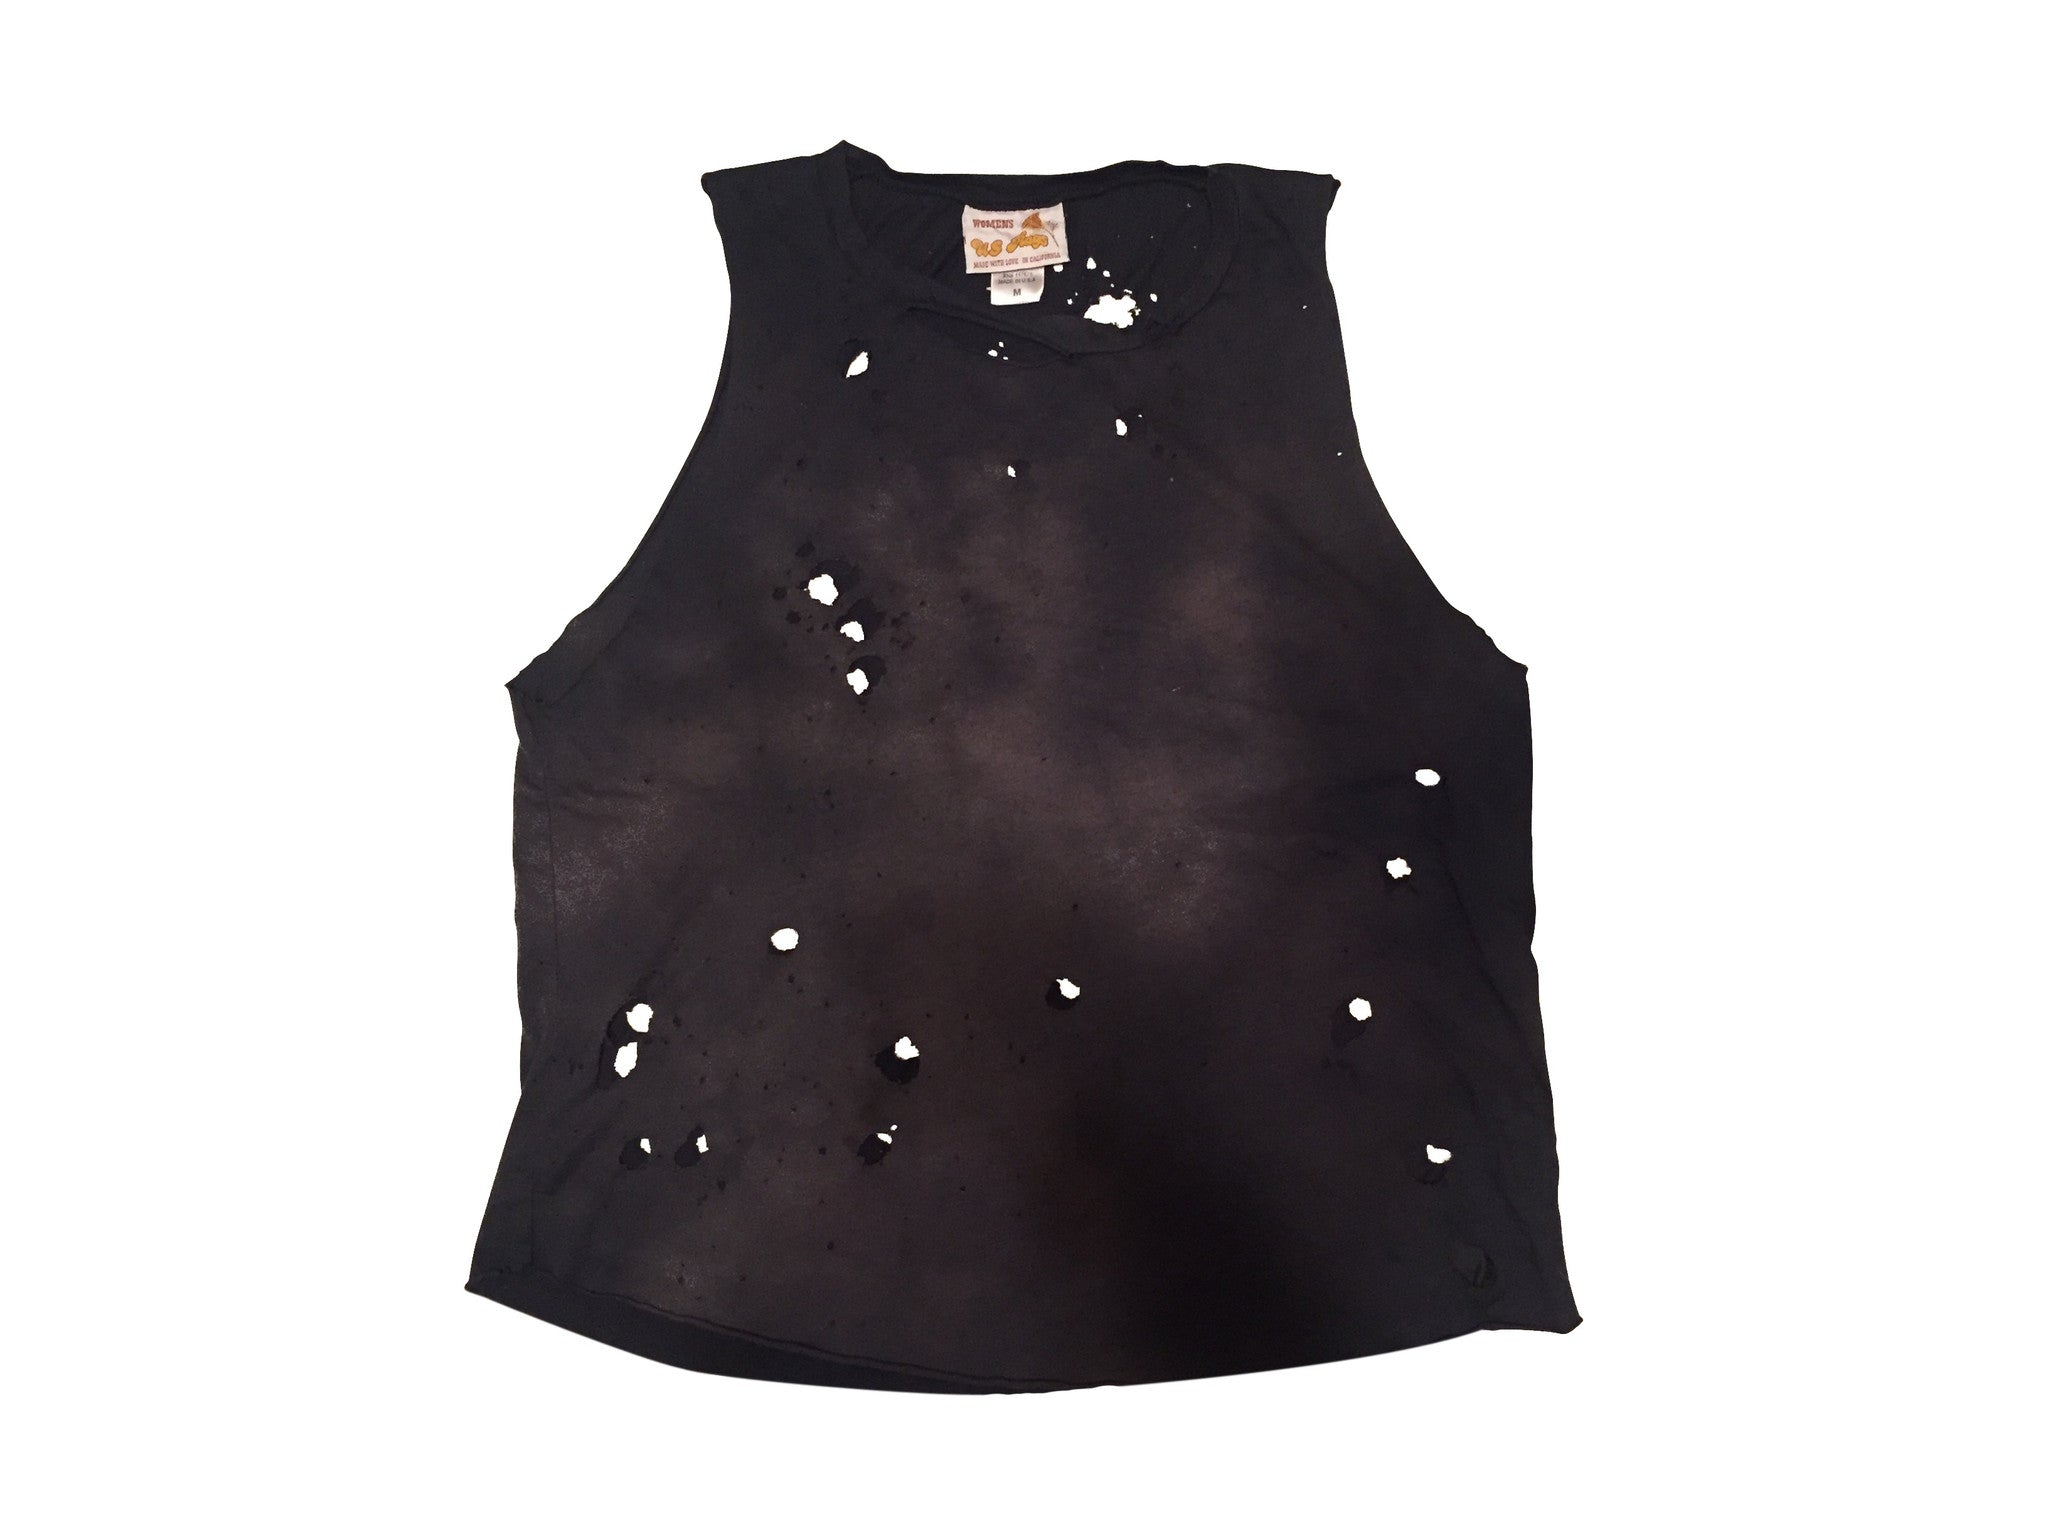 US RAGS :  DESTROYED VINTAGE BLACK TANK TOP - 85 86 eightyfiveightysix